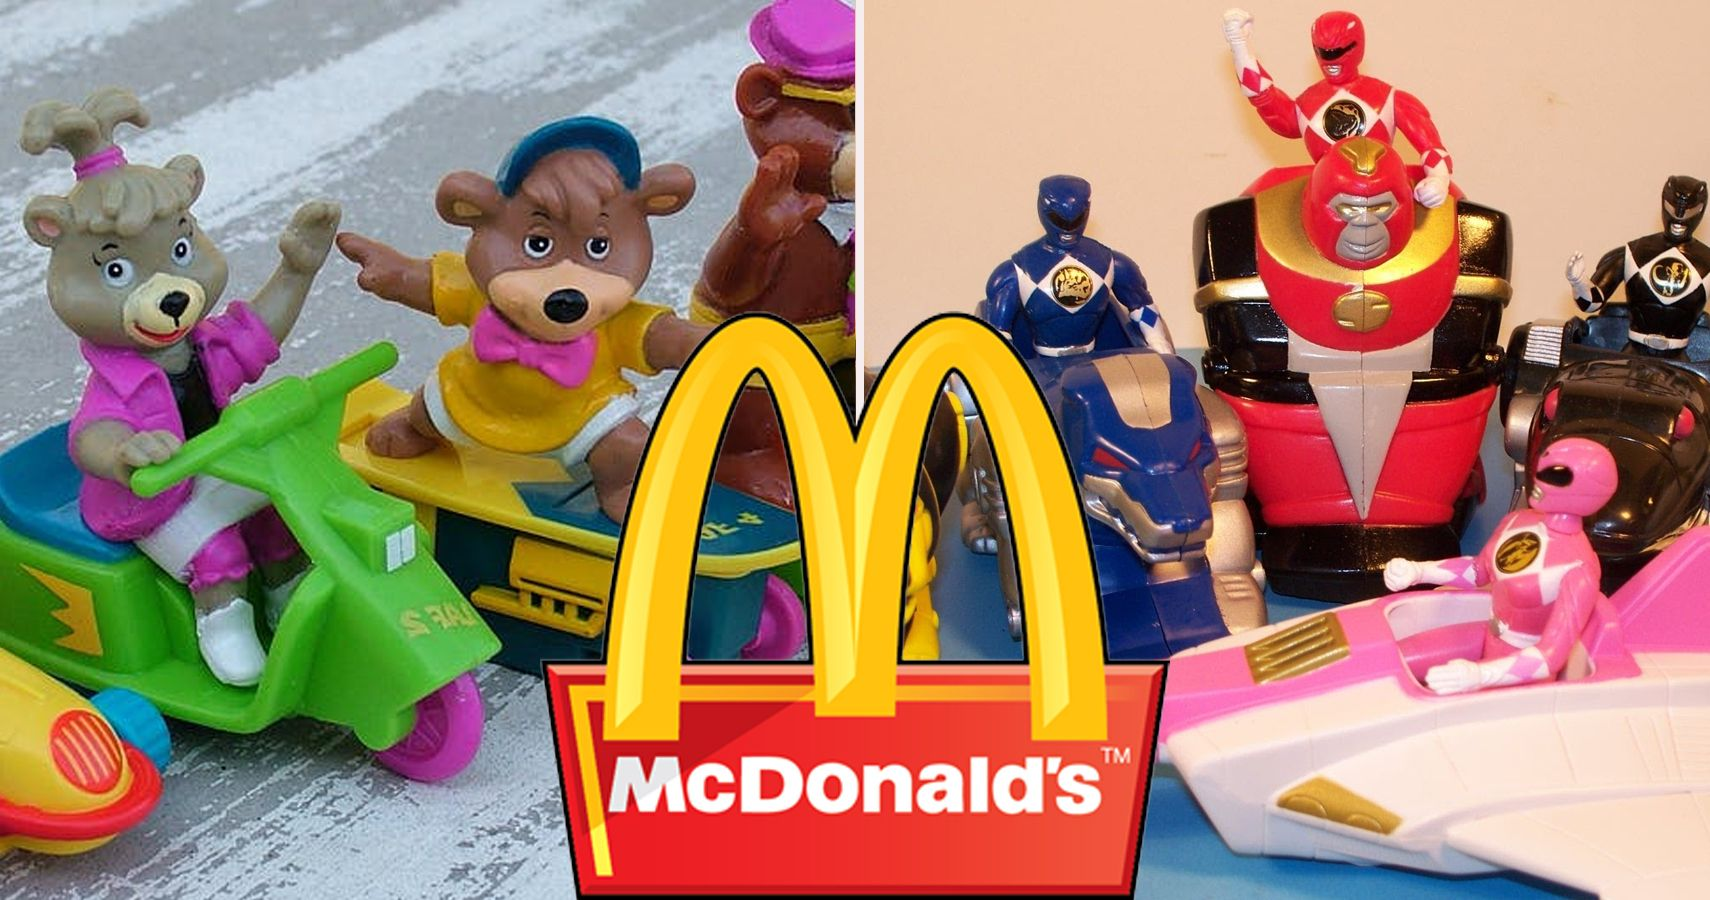 mcdonald's toys that are worth a fortune today | thegamer